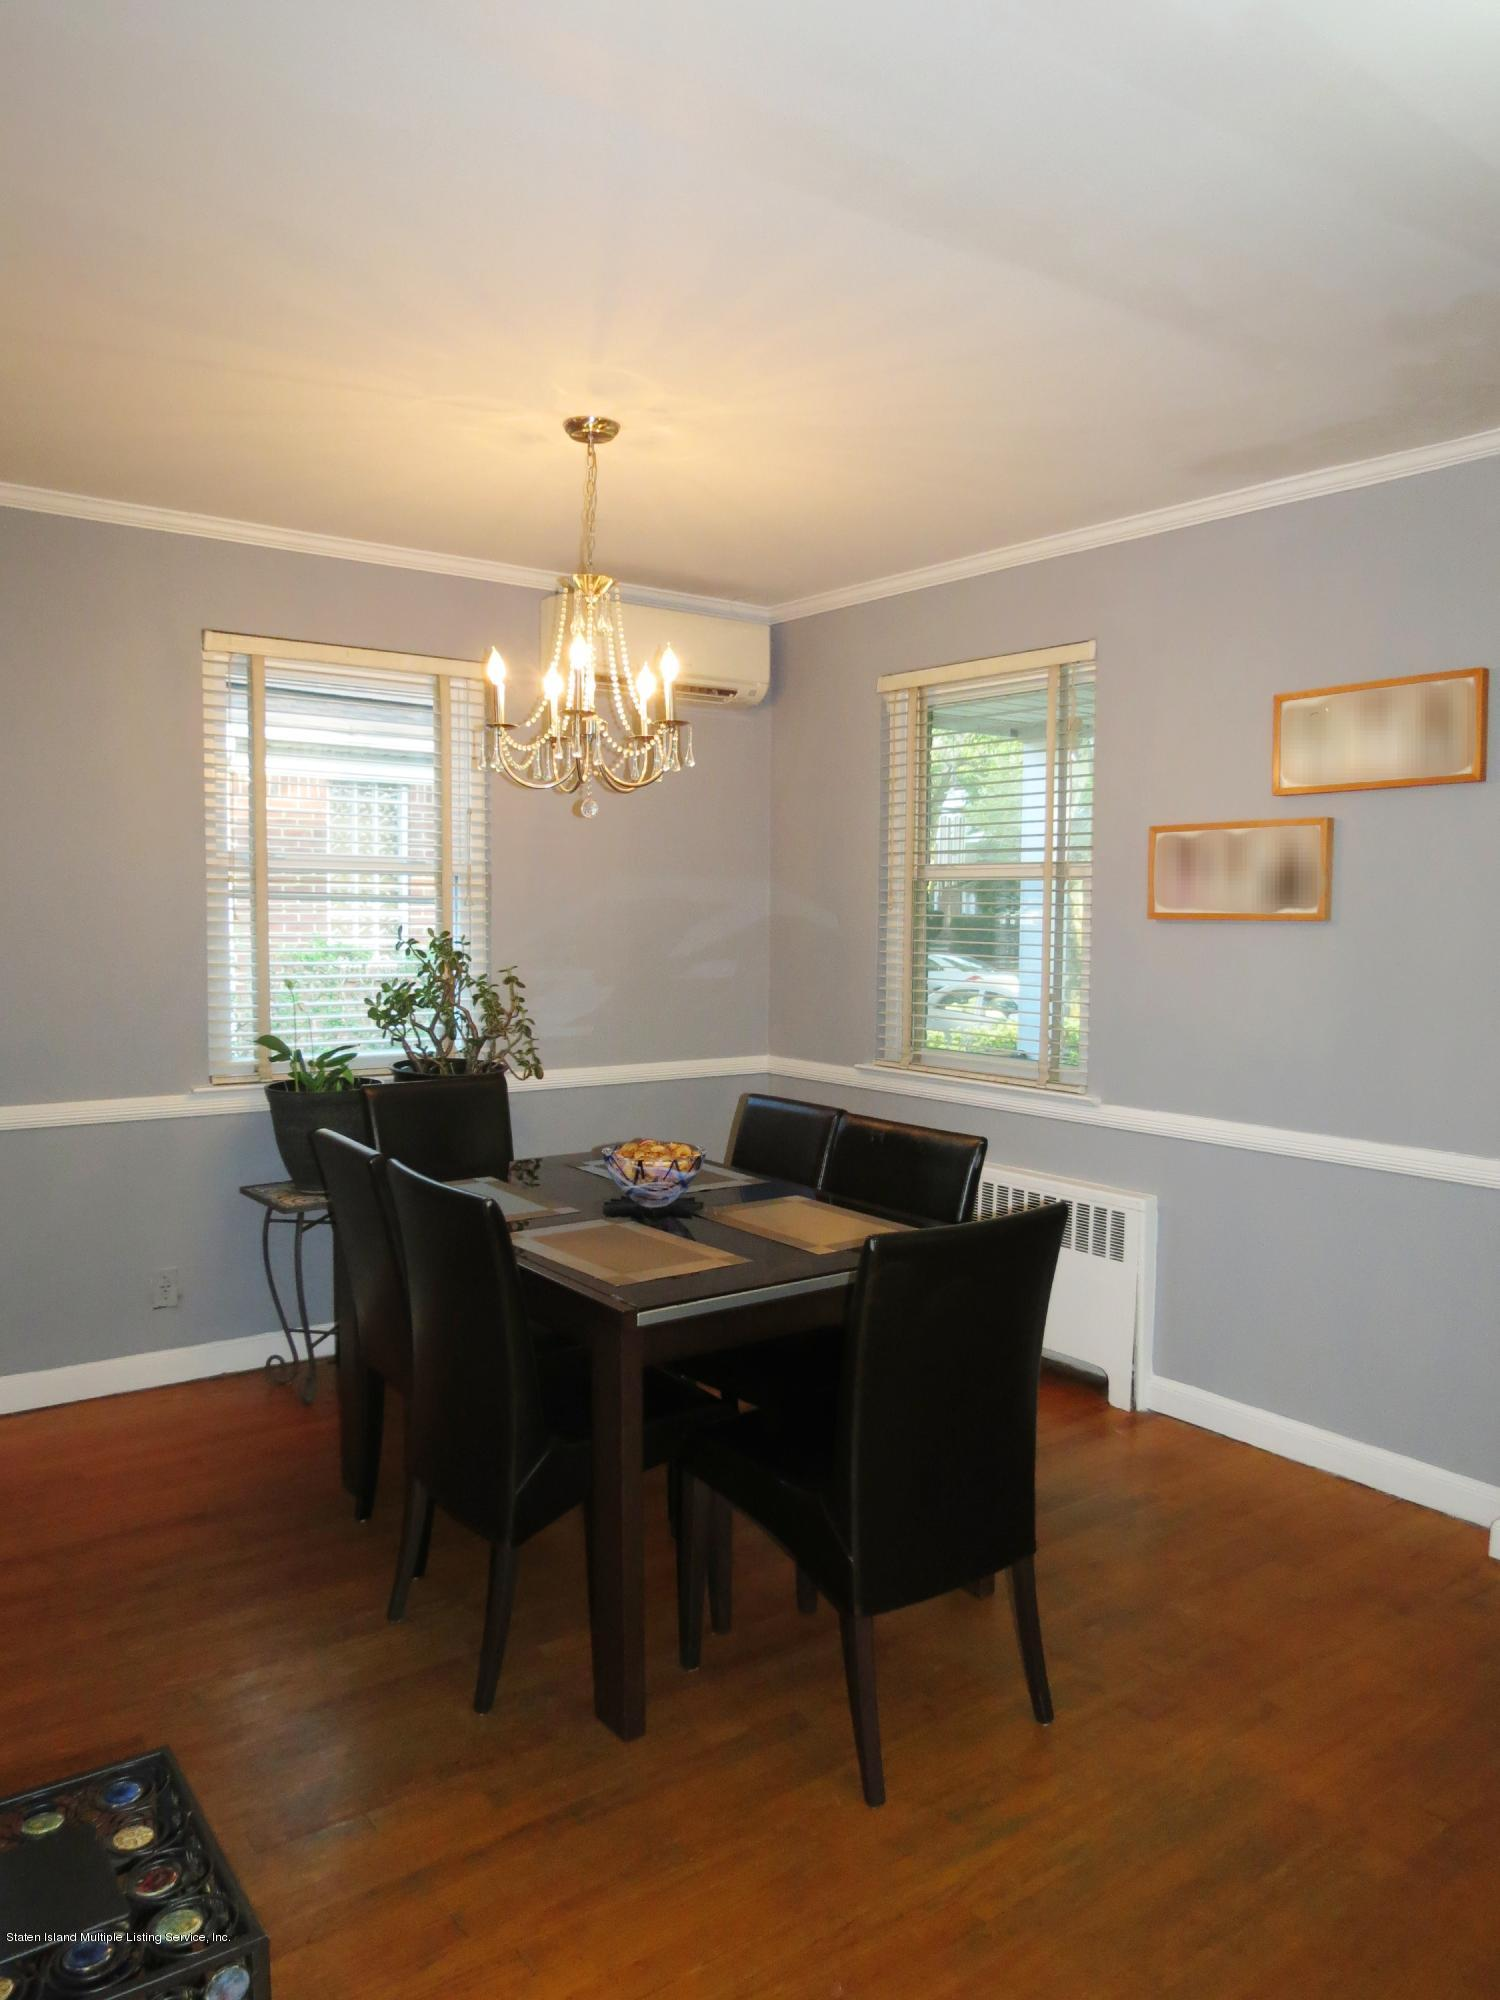 Single Family - Detached 8003 215th St   Queens, NY 11427, MLS-1131180-13